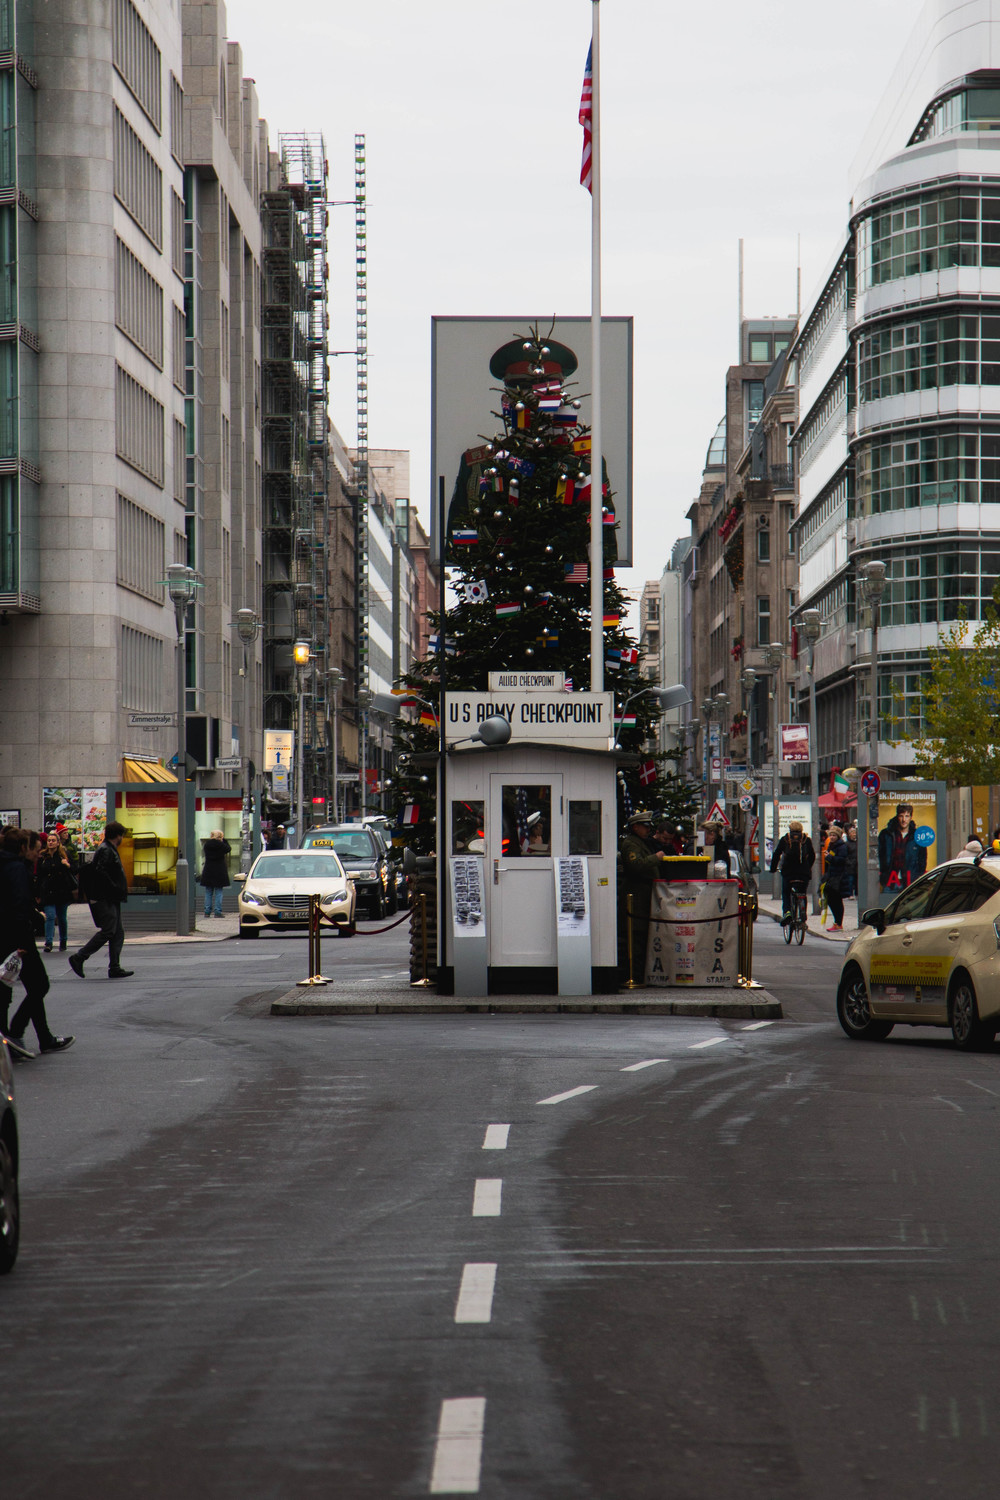 Checkpoint Charlie Distance - Checkpoint Charlie, Berlin, Germany 02/12/2015